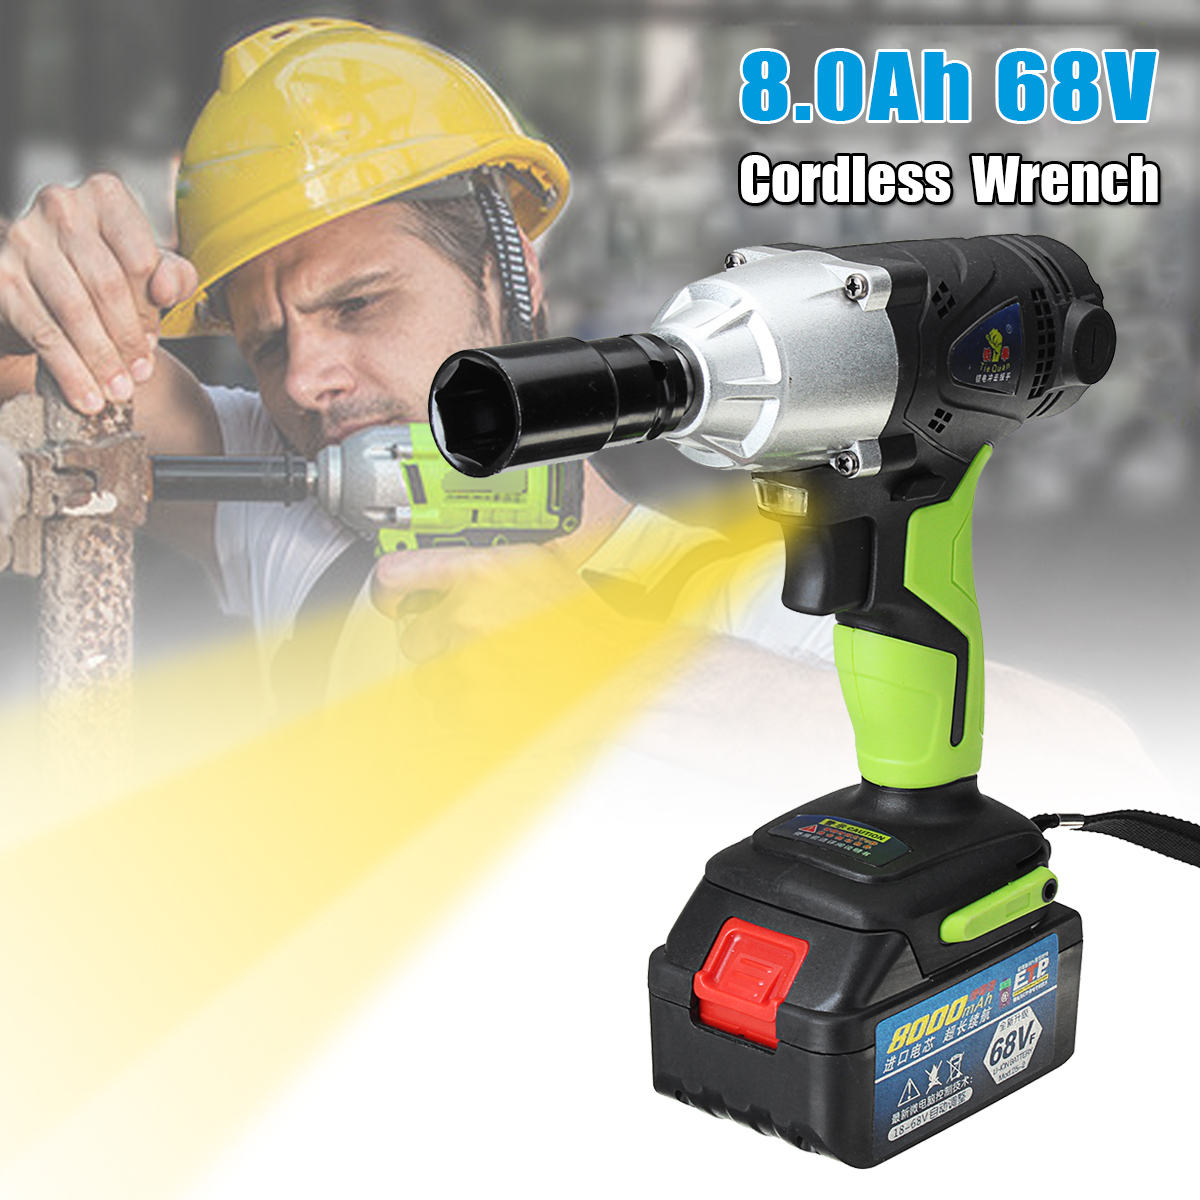 68V 8000mAh Cordless Electric Wrench 420Nm 1 2 Chuck with 1 Batteries 1 Charger Rechargeable Electric